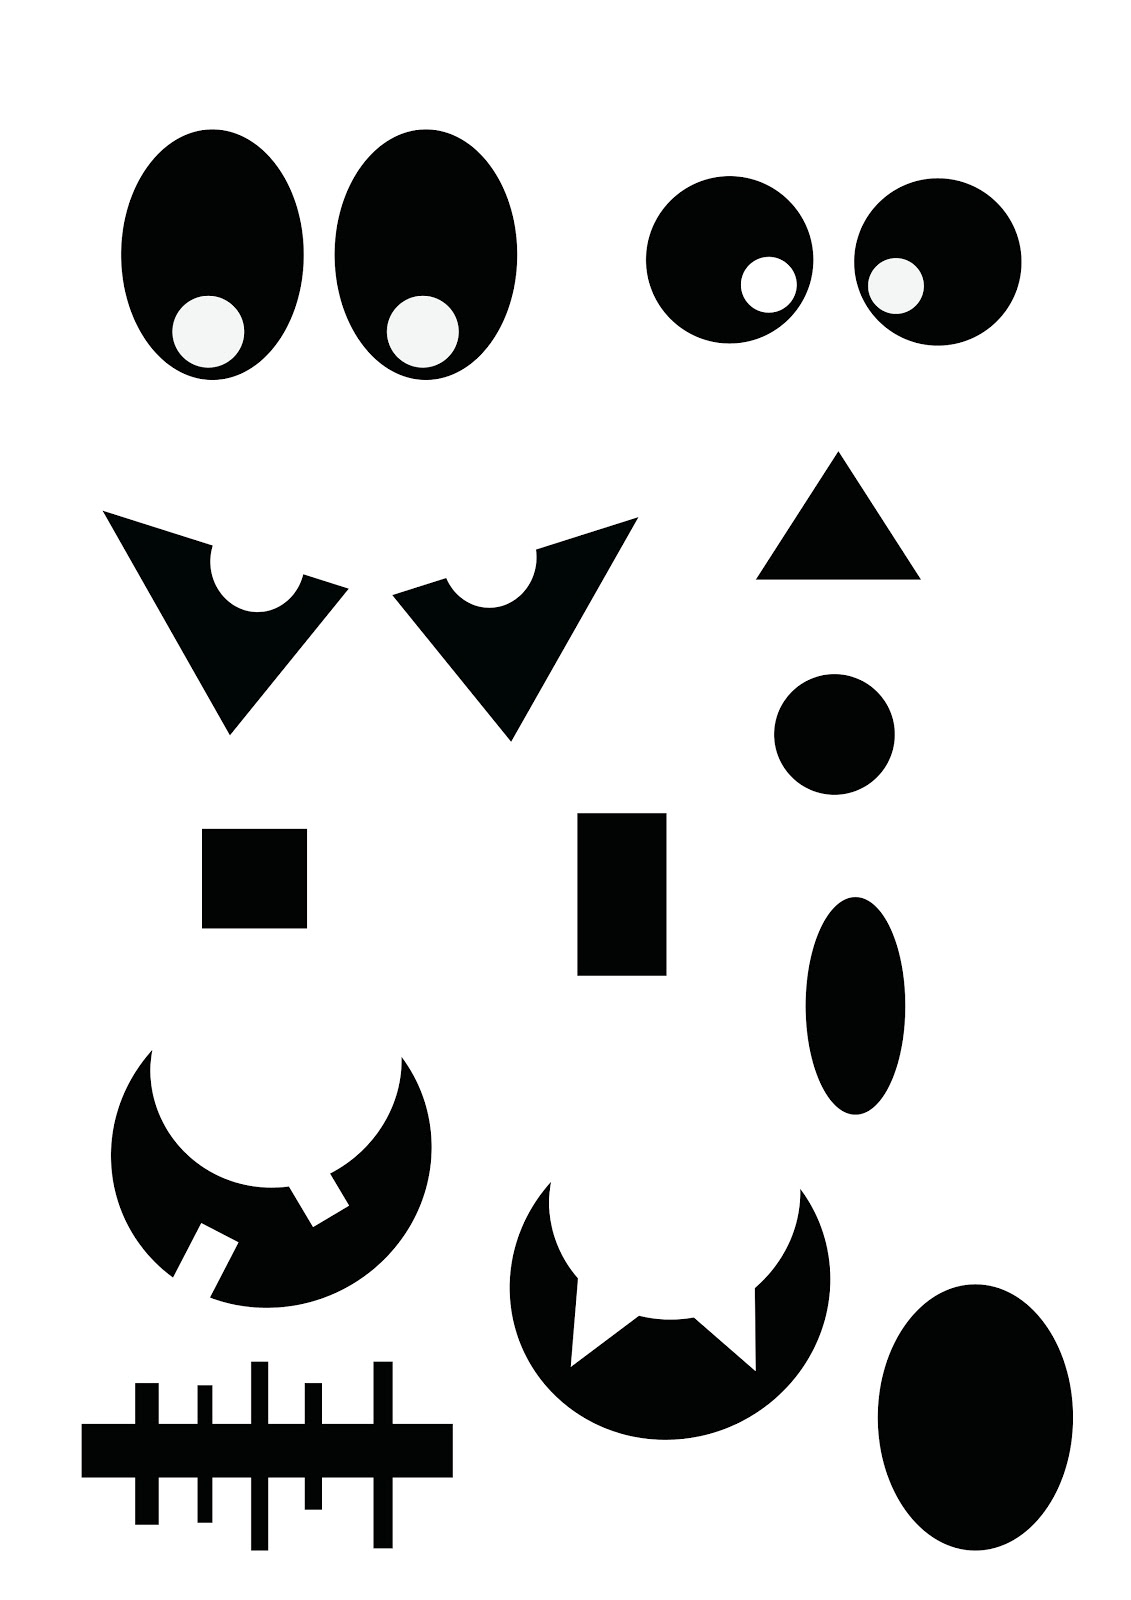 Barb Wire Skull Tribal Tattoo further Clown Tattoo Stencil in addition Eye Liner Problems furthermore Totenkopf Vorlagen also Spooky Eyes For Halloween Decor. on scary eyes stencils